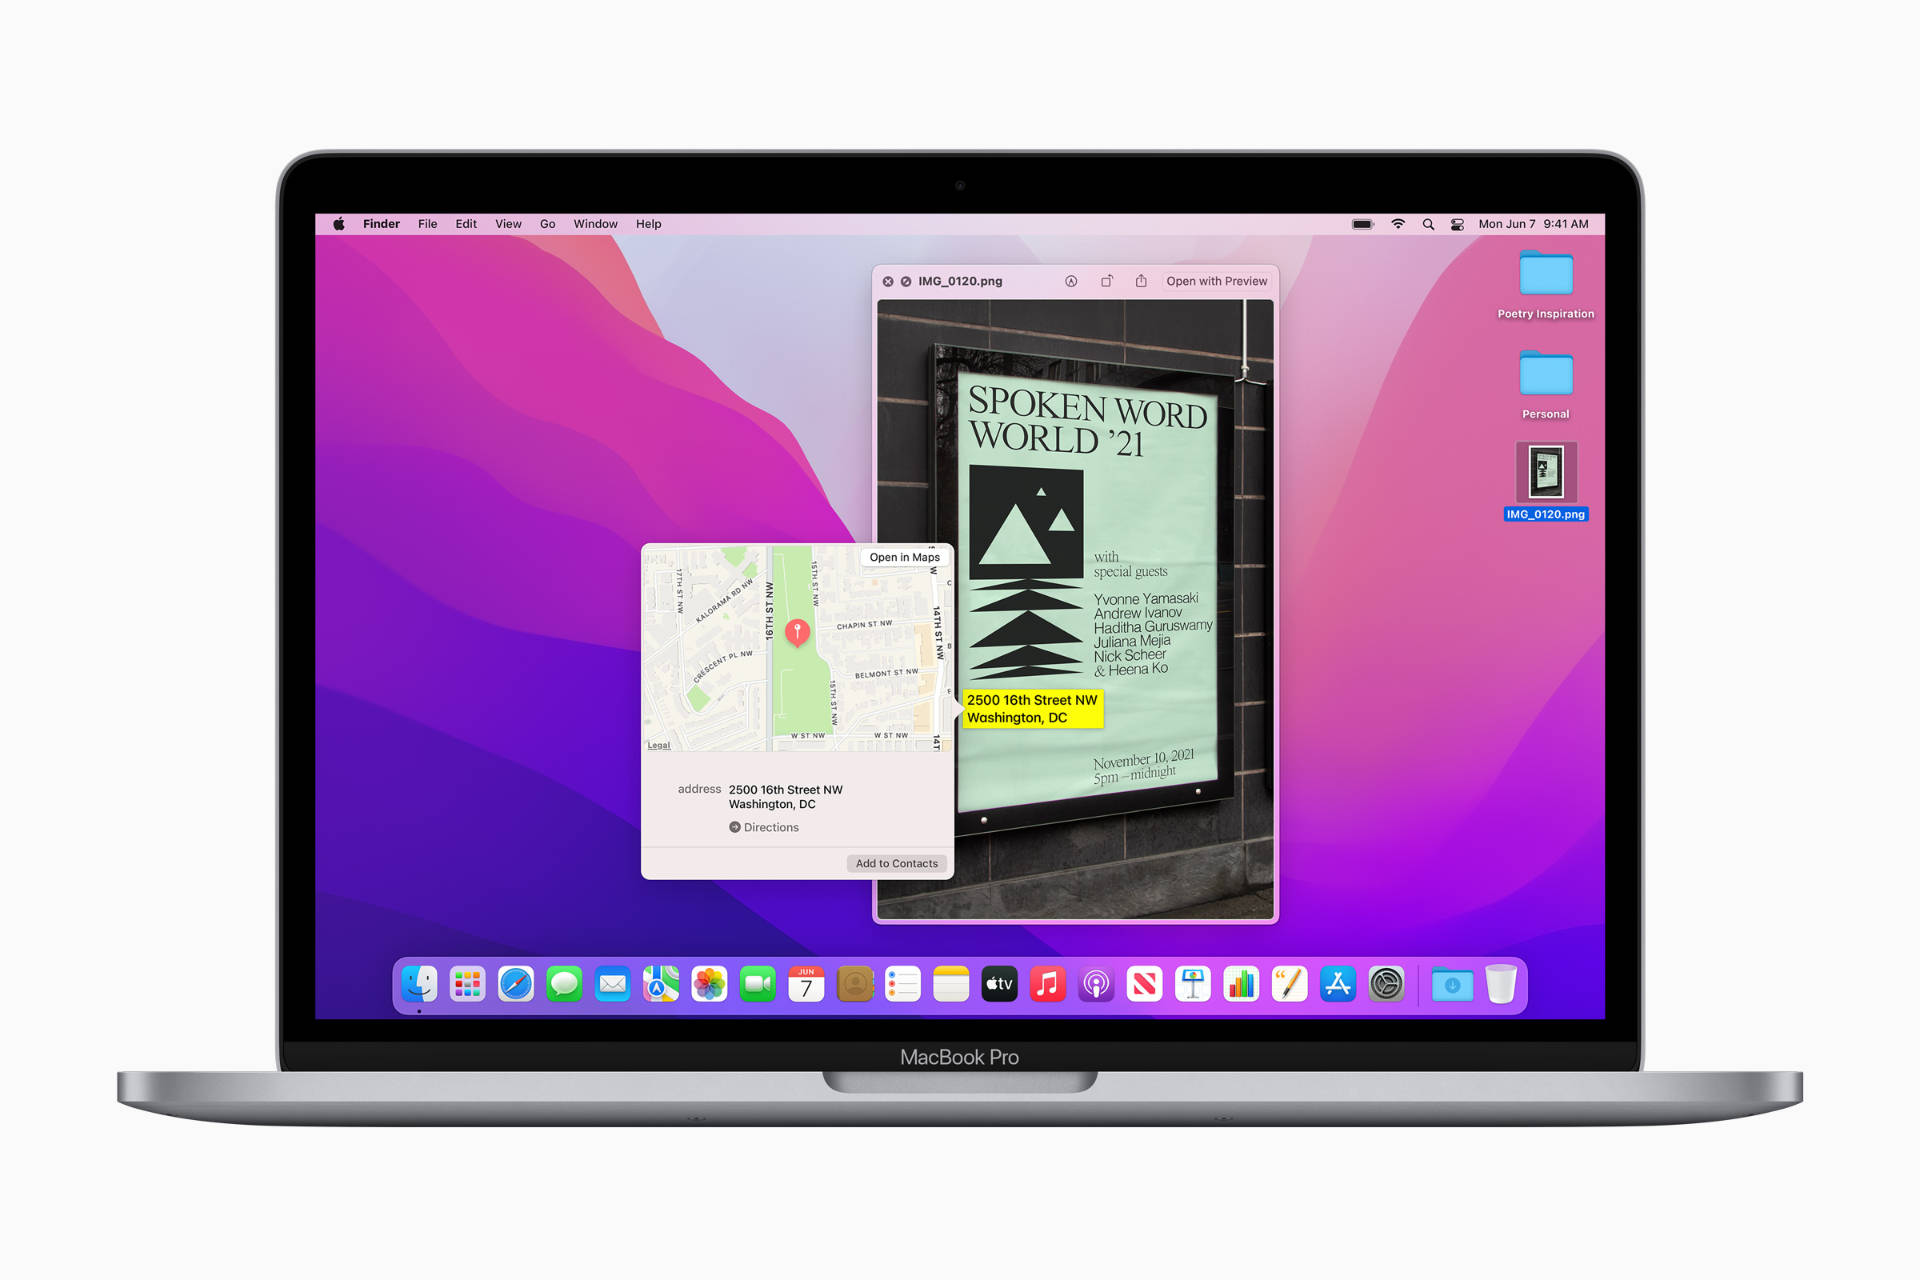 Live Text in macOS Monterey